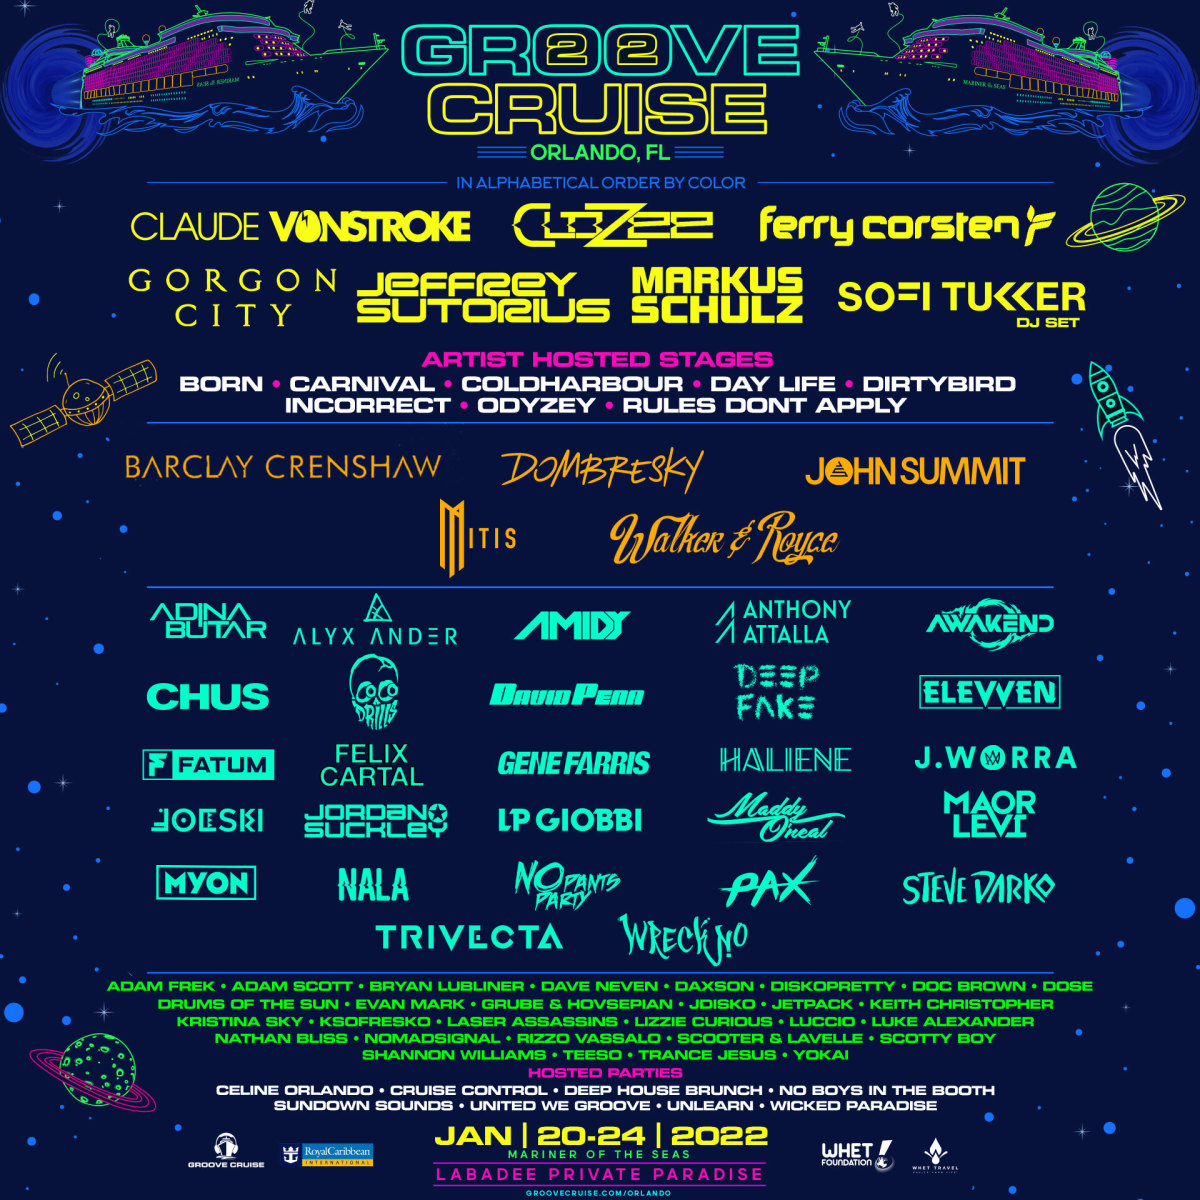 Groove Cruise Orlando announces the lineup for the January 2022 voyage.